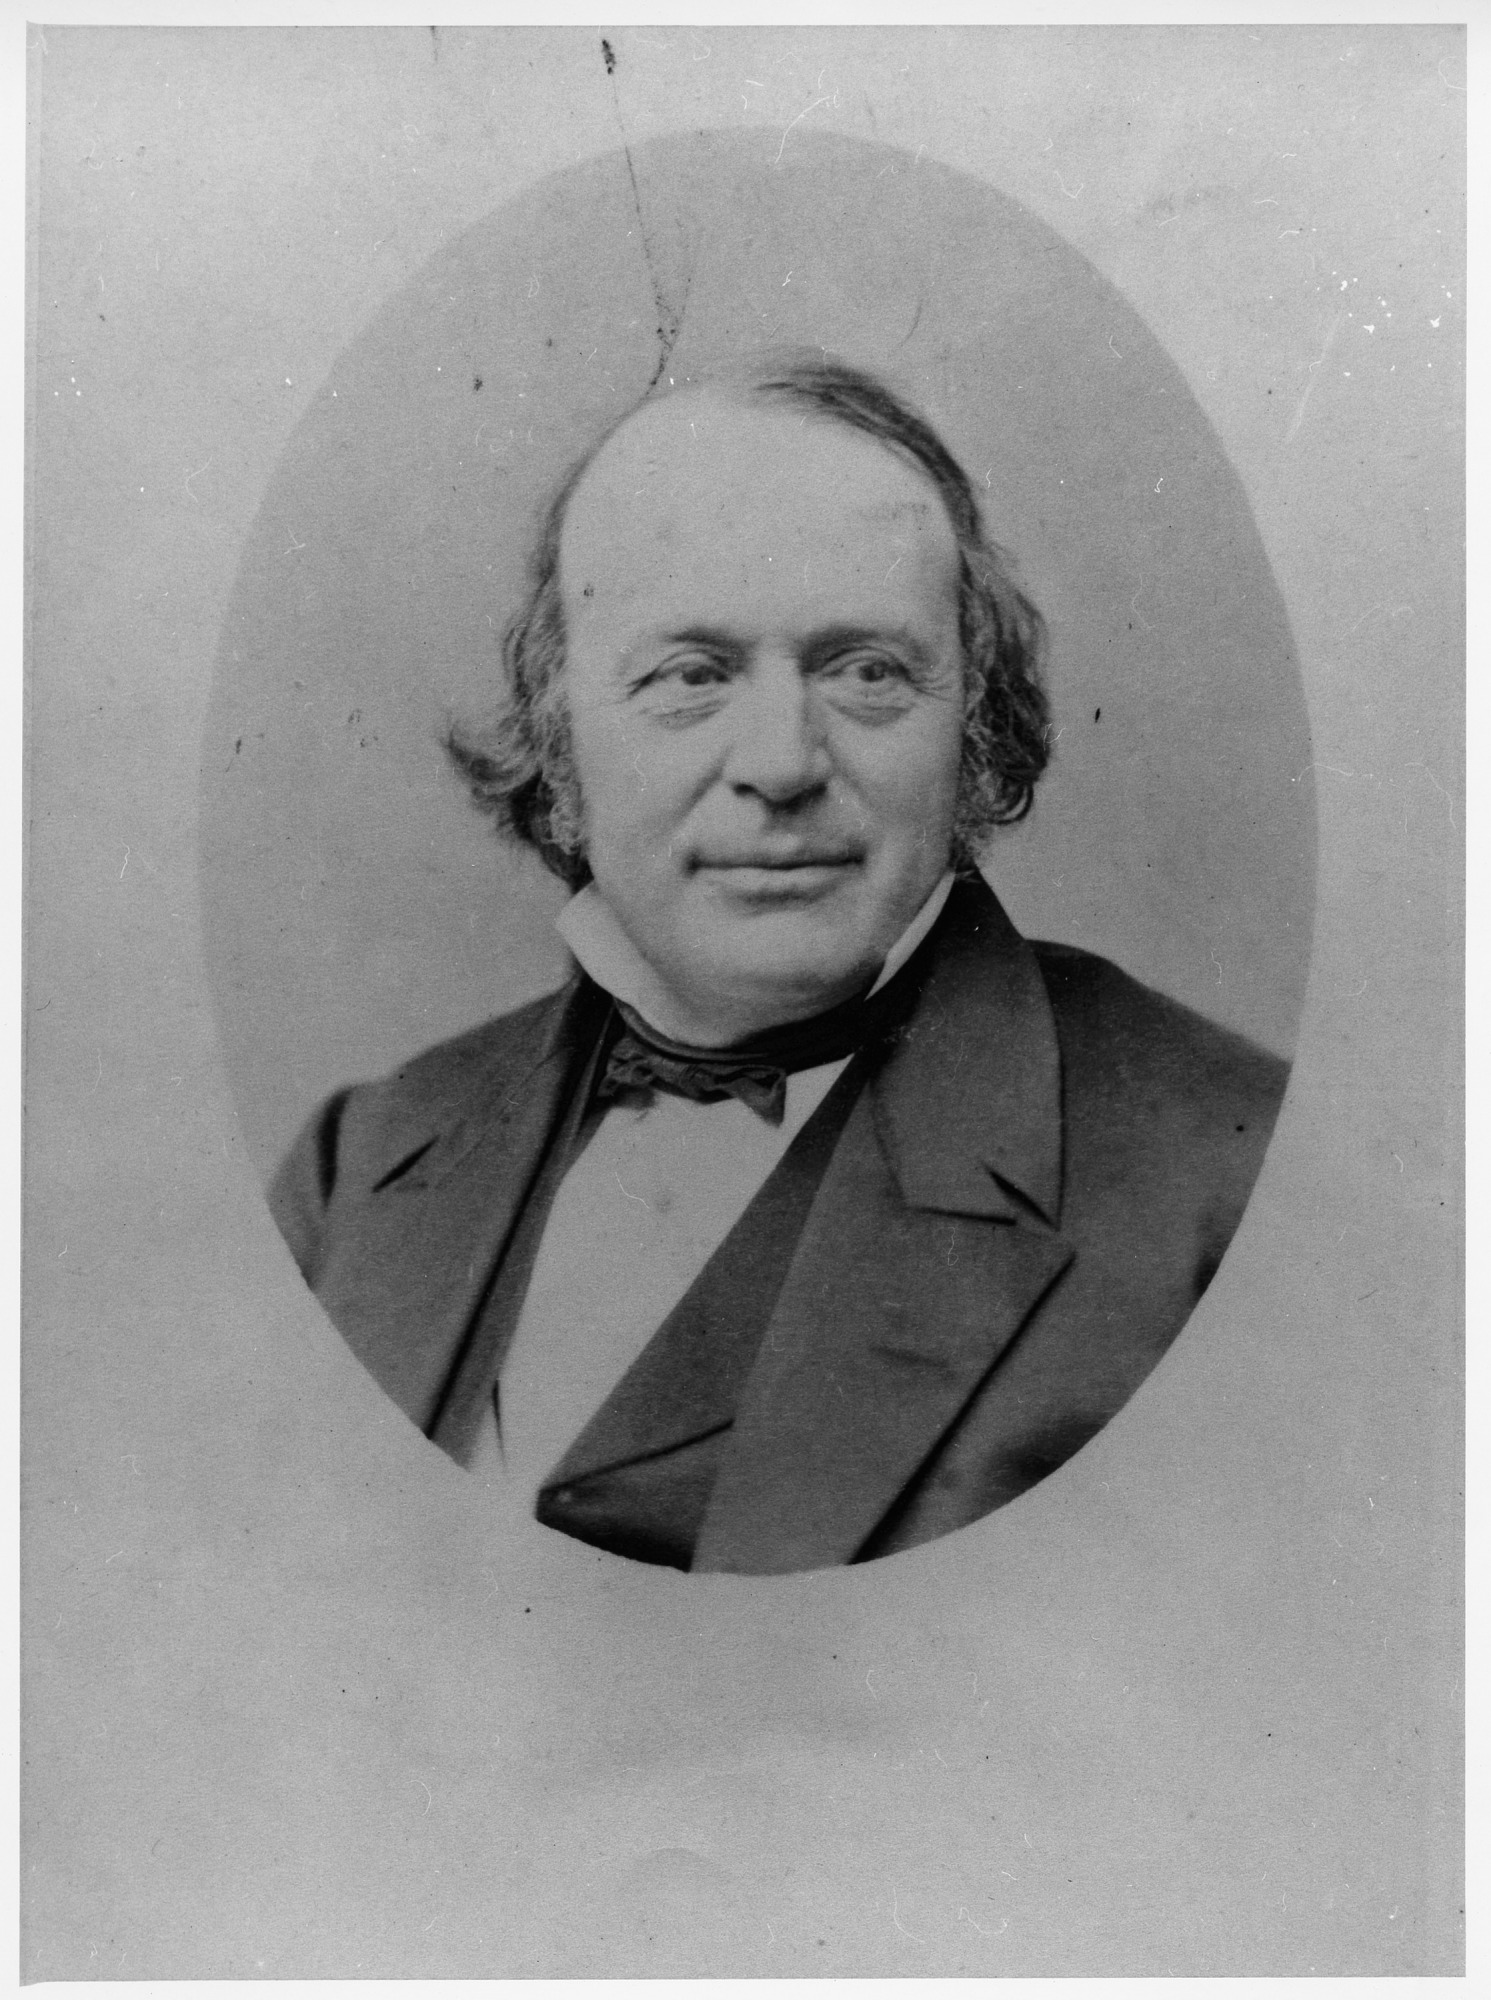 Photograph of Louis Agassiz, 1870. Smithsonian Institution Archives, negative number 2002-10678.